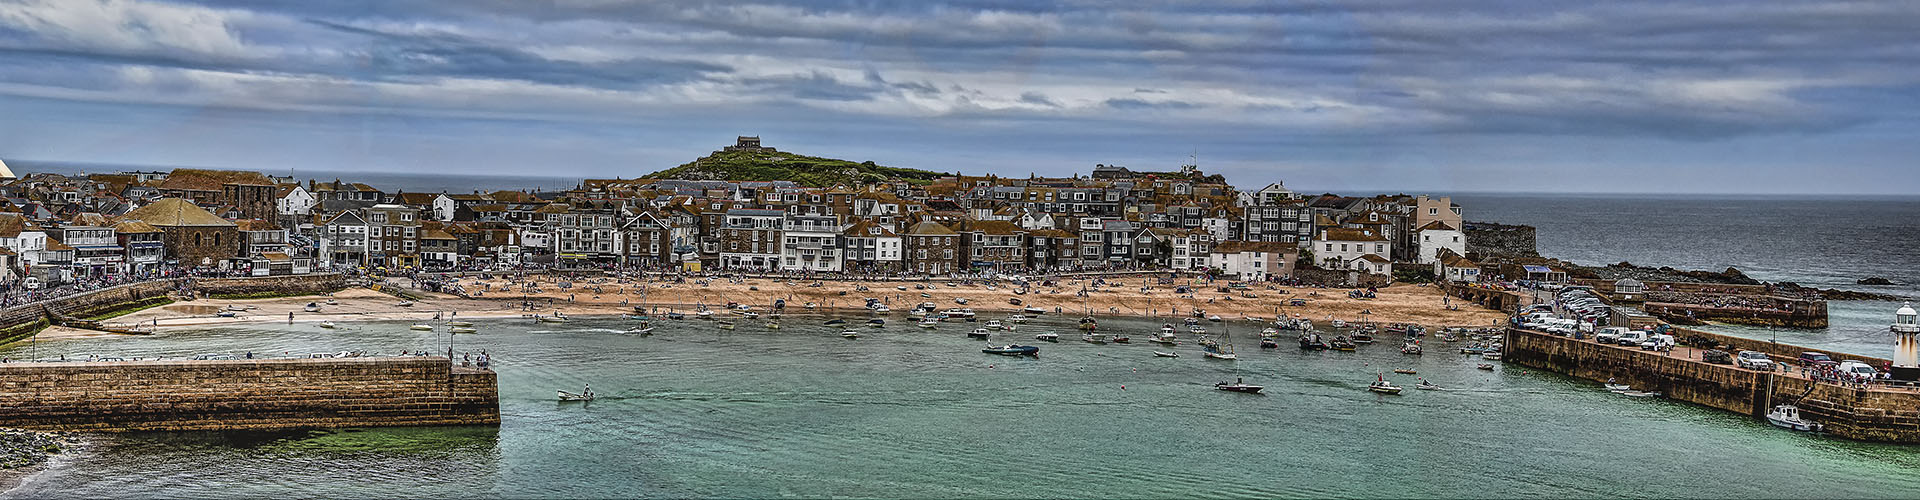 st-ives-harbour-and-twn